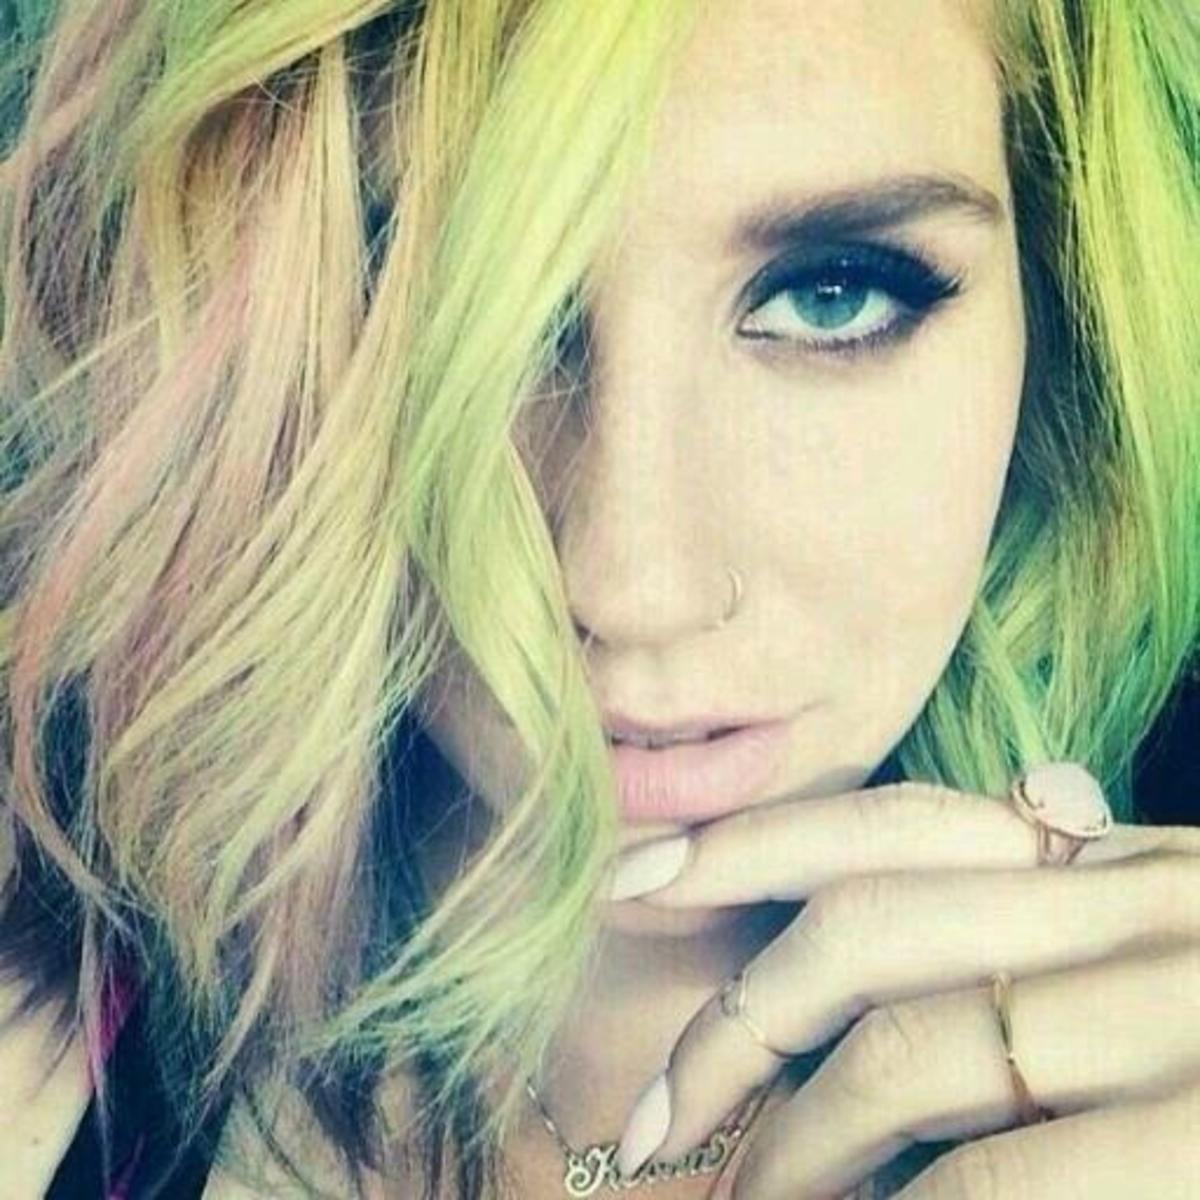 kesha-is-upset-because-people-think-she-cant-sing